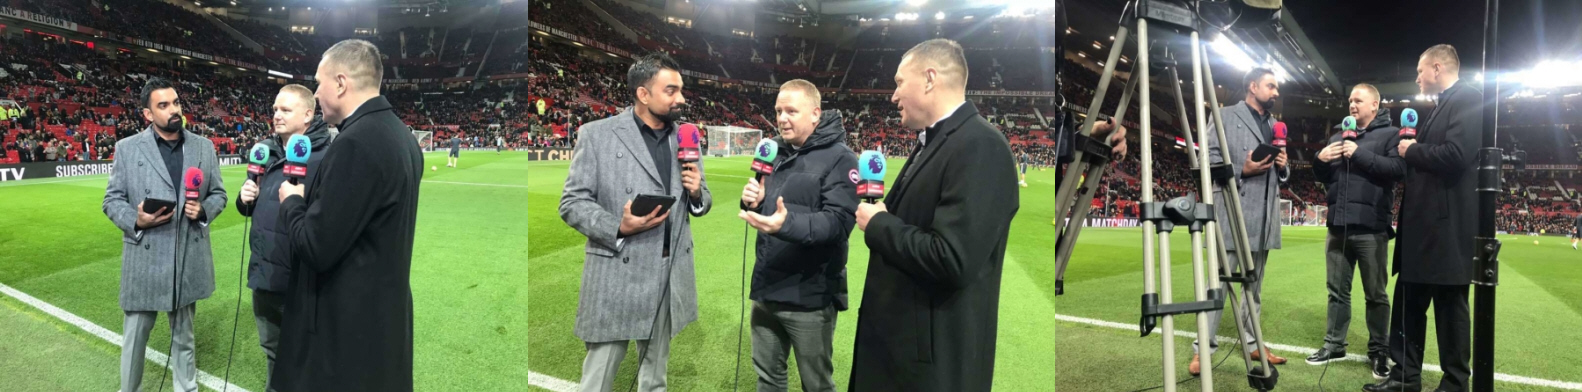 Pitchside Manchester United